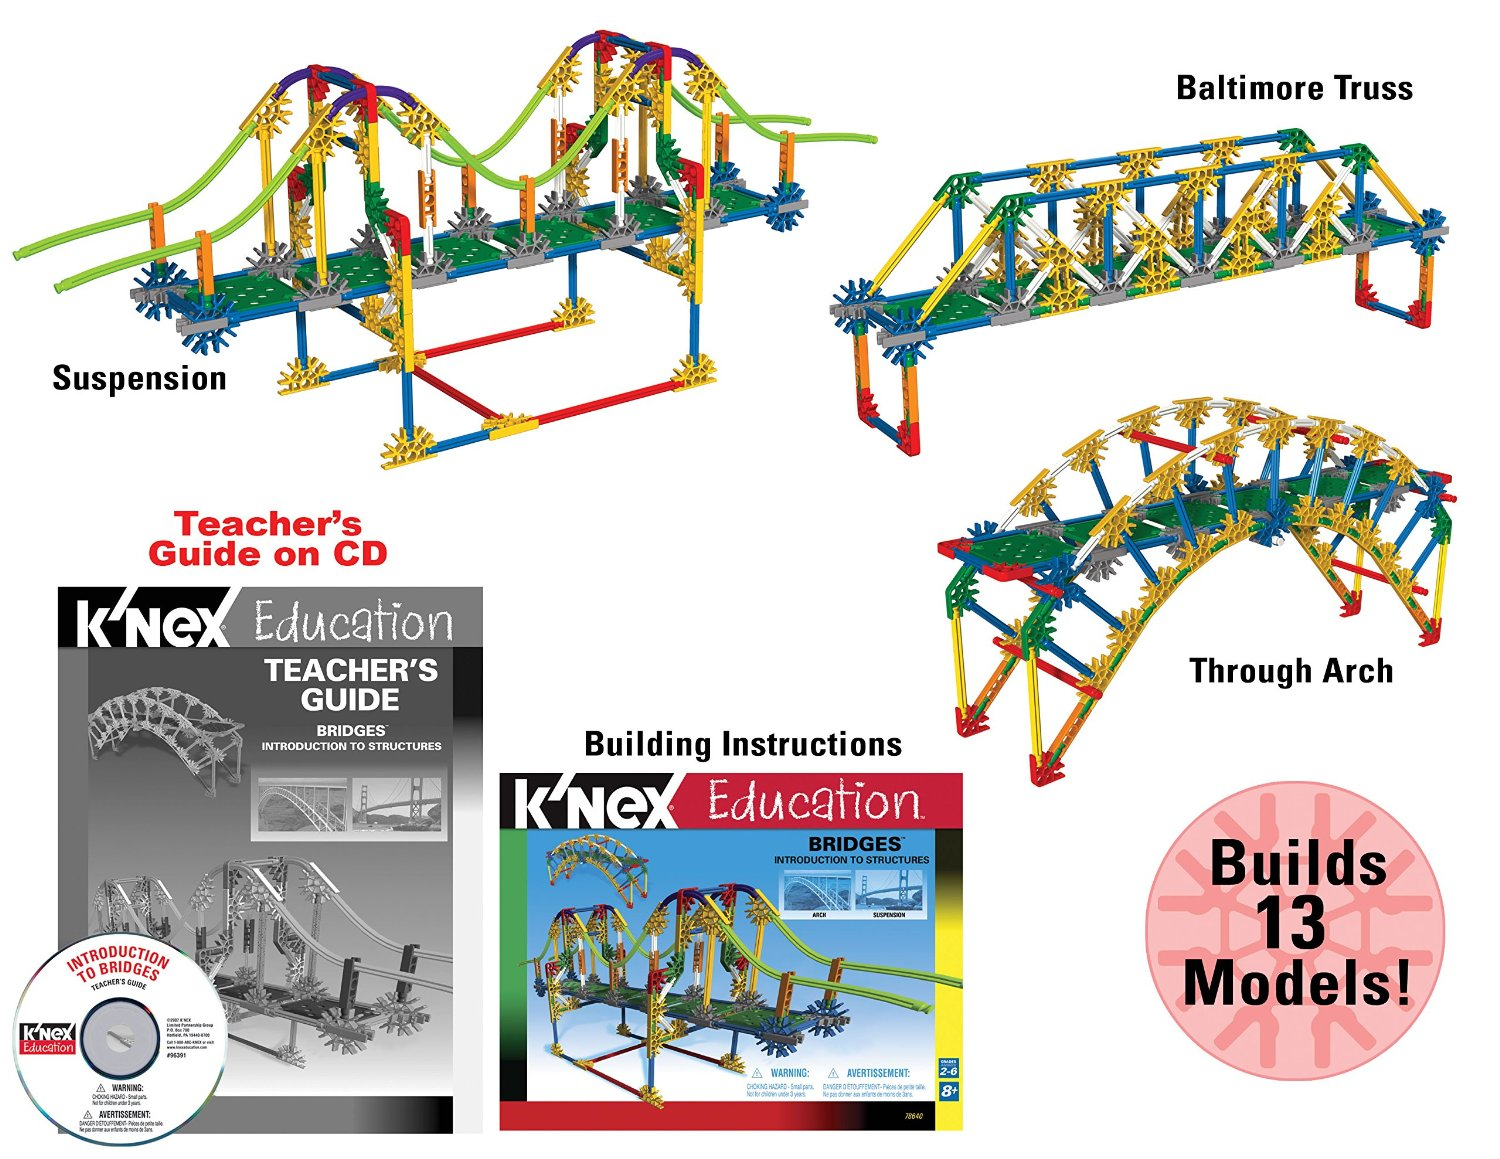 K'Nex bridge building set